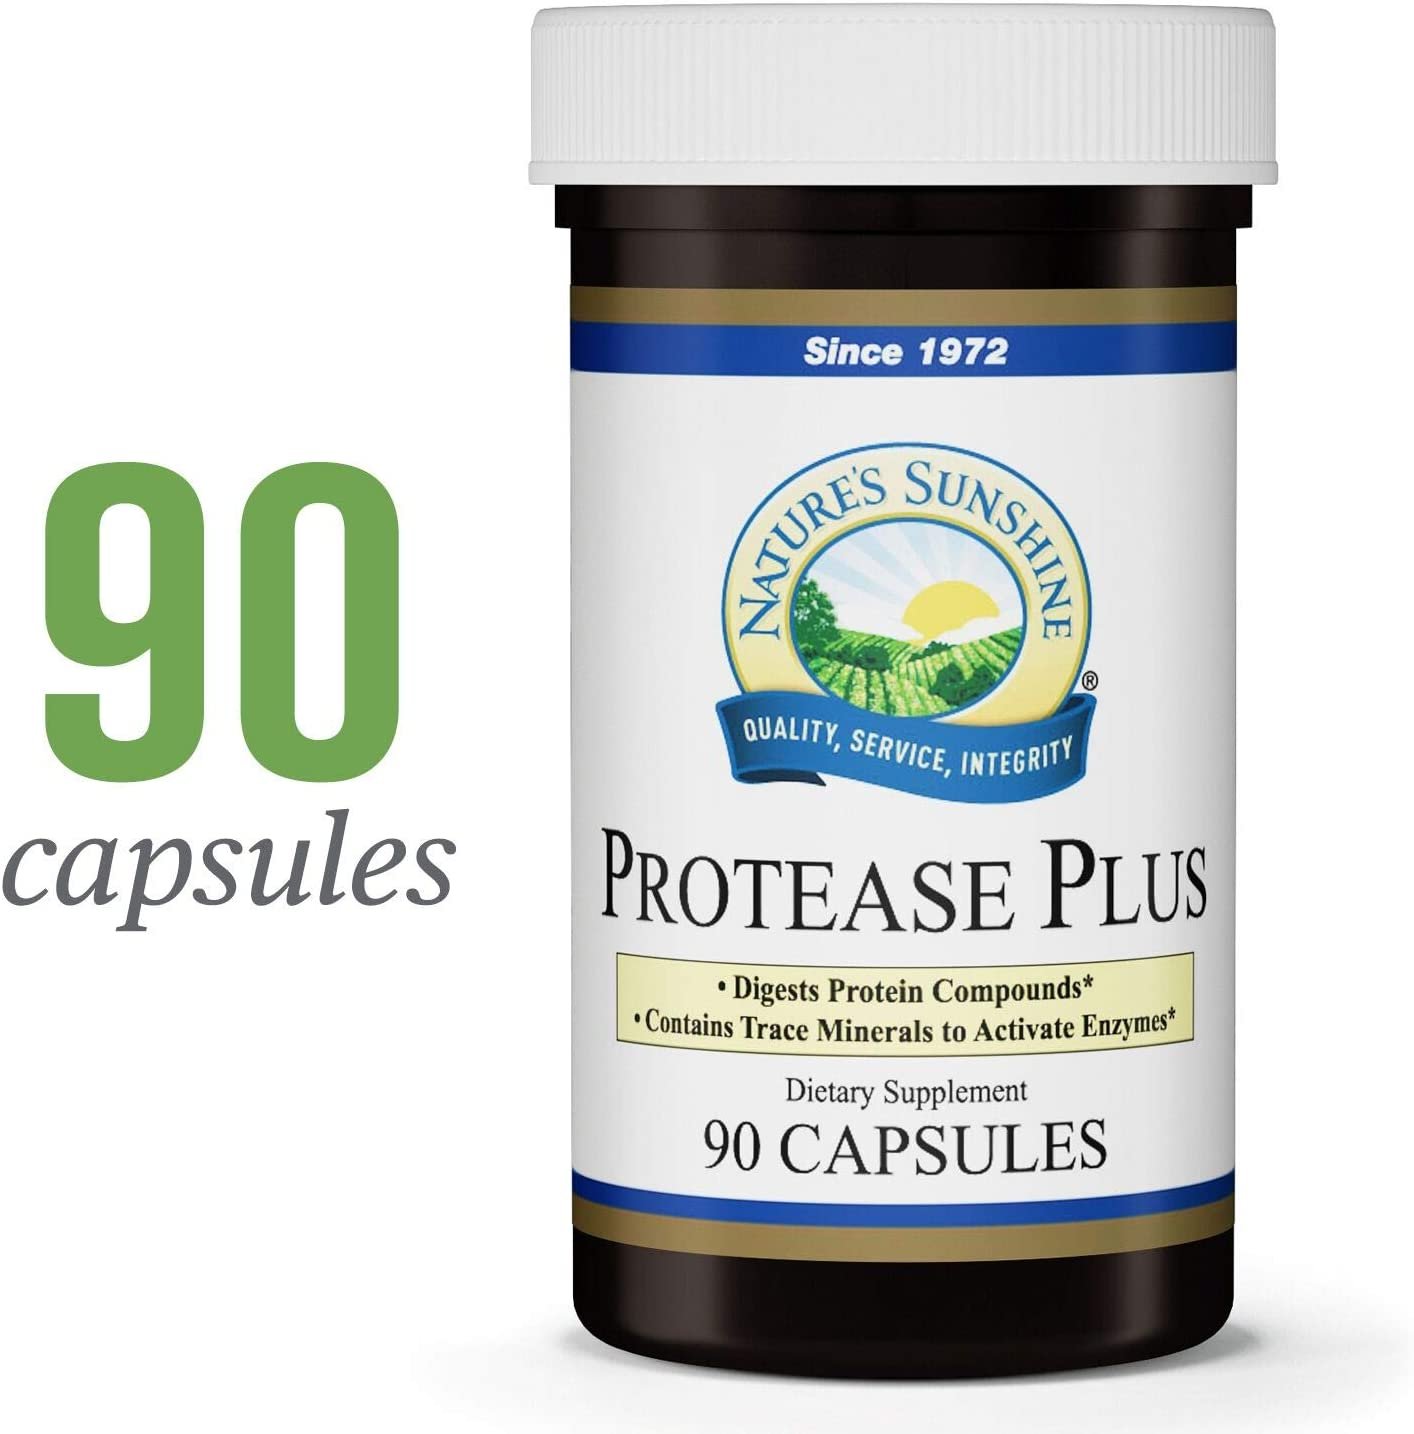 Nature s Sunshine Protease Plus, 90 Capsules Powerful Digestive Enzyme Supplements with 60,000 HUT Protease to Break Down Proteins and Amino Acids